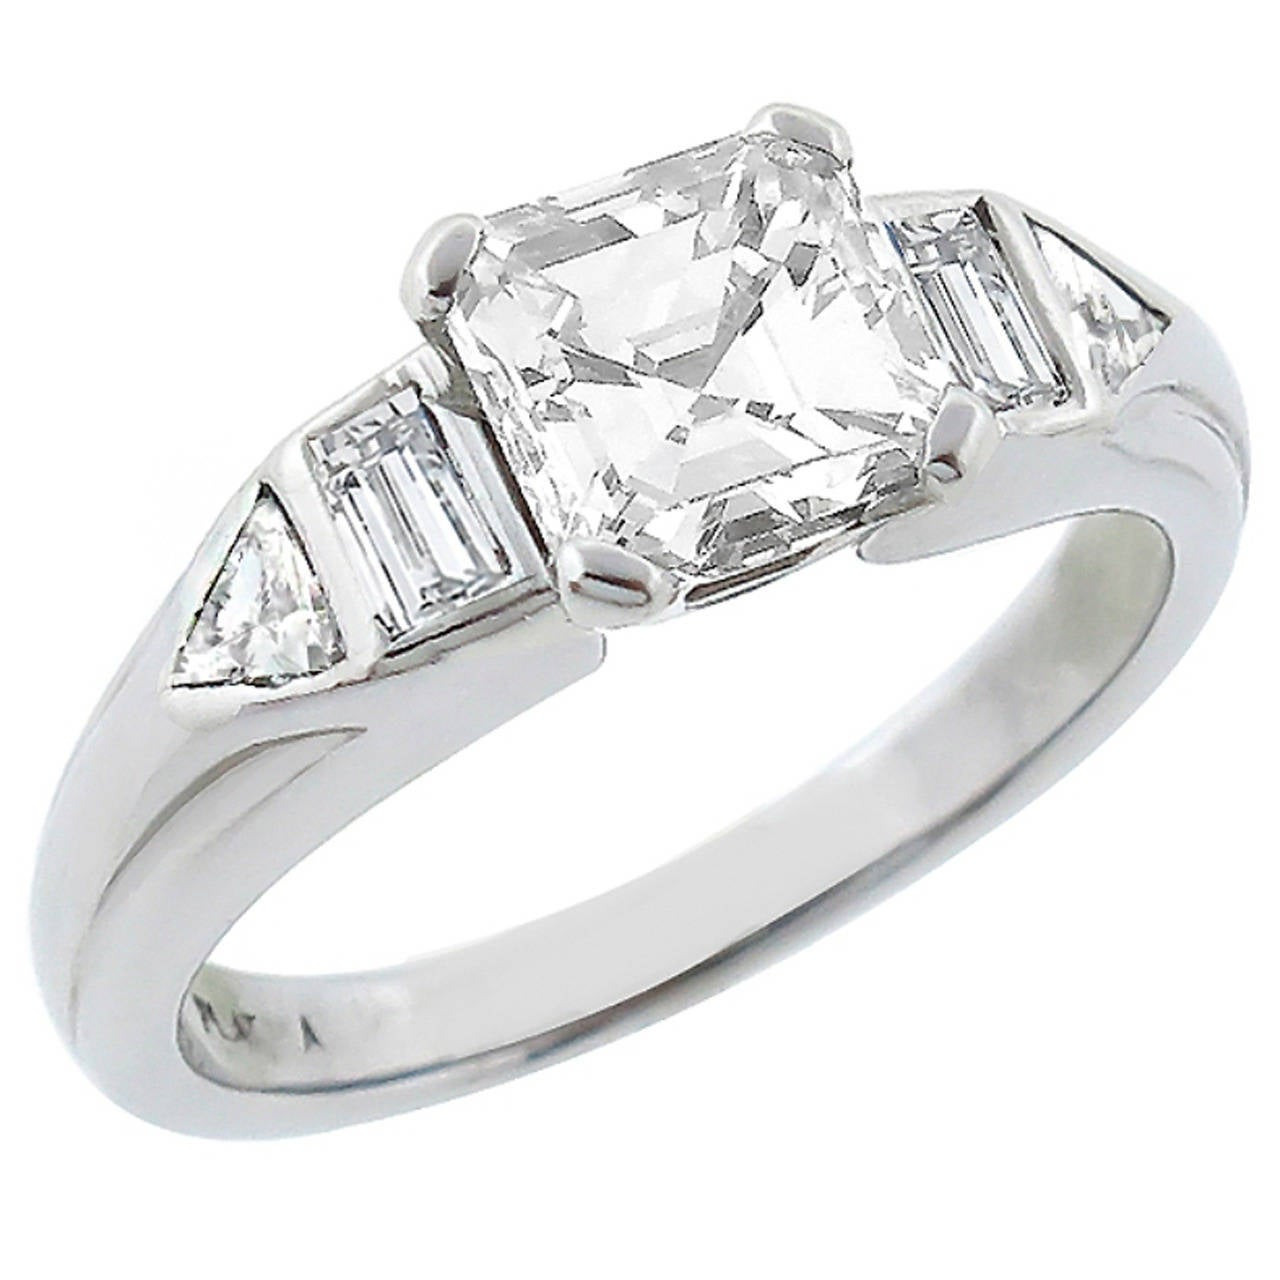 1960s GIA Certified 1 15ct Asscher Cut Diamond Ring For Sale at 1stdibs